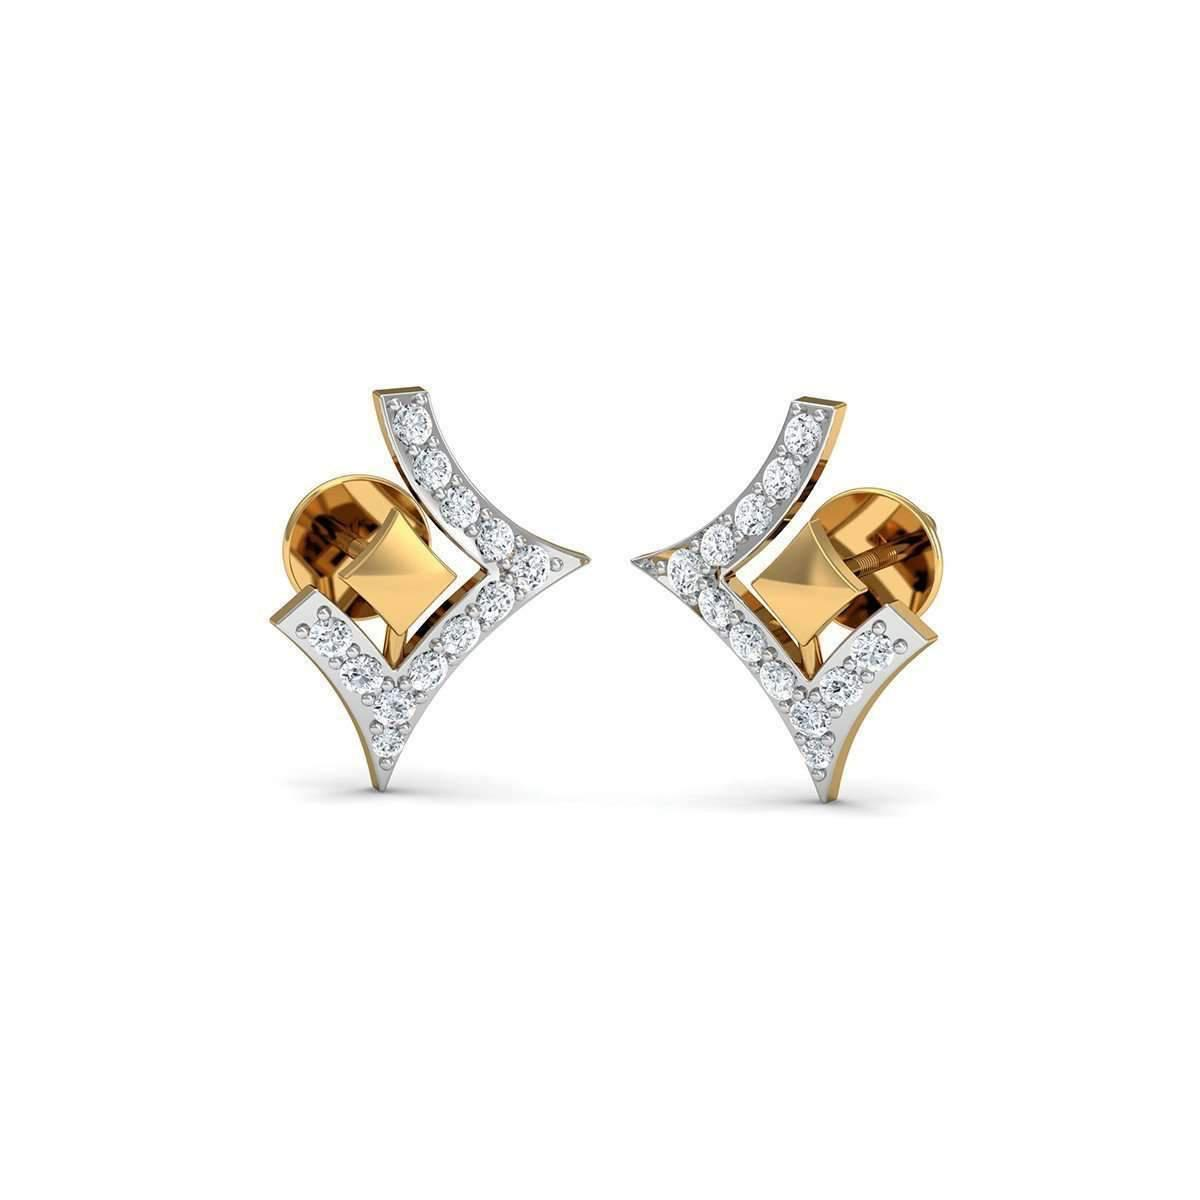 Diamoire Jewels Nature Inspired 10kt Yellow Gold and Diamond Pave Earrings AX6YI5NXA